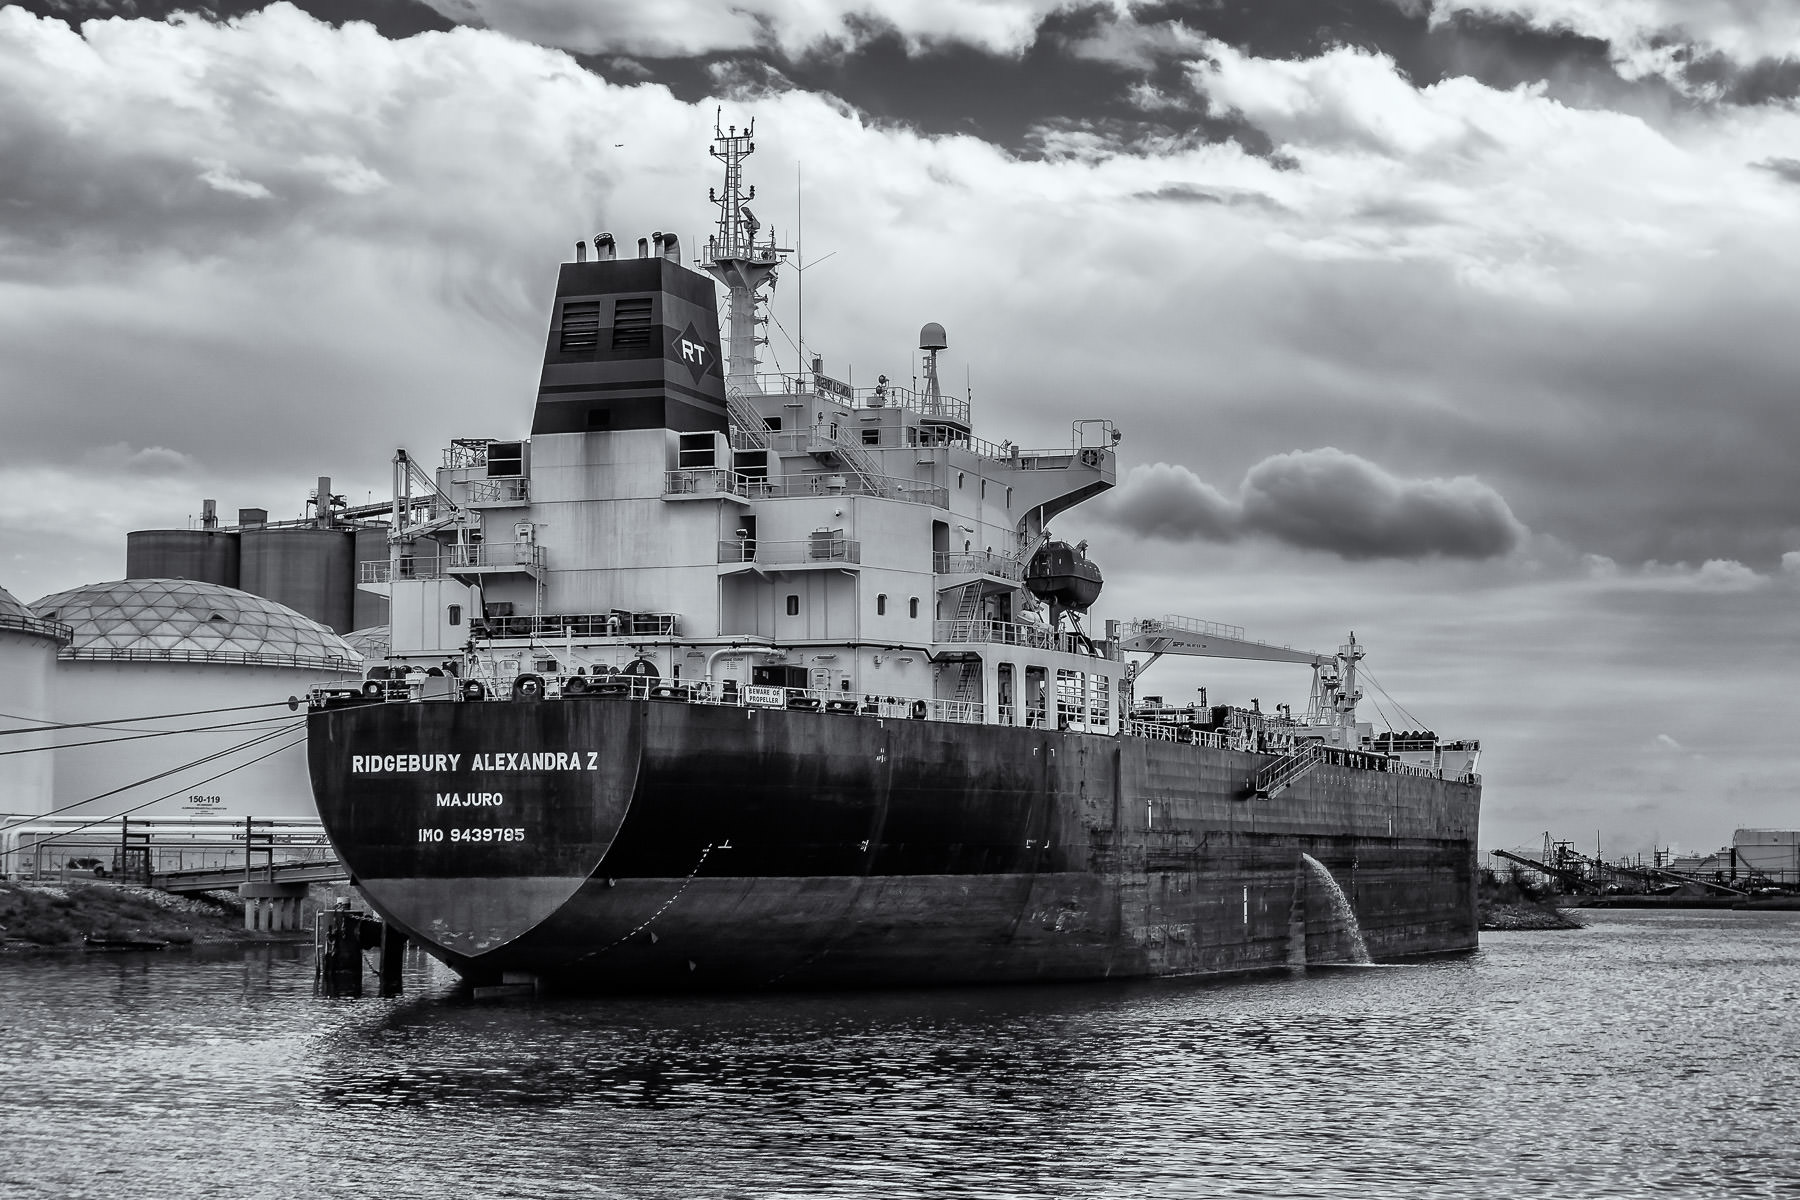 The chemical tanker Ridgebury Alexandra Z sits docked in the Houston Ship Channel, Texas.